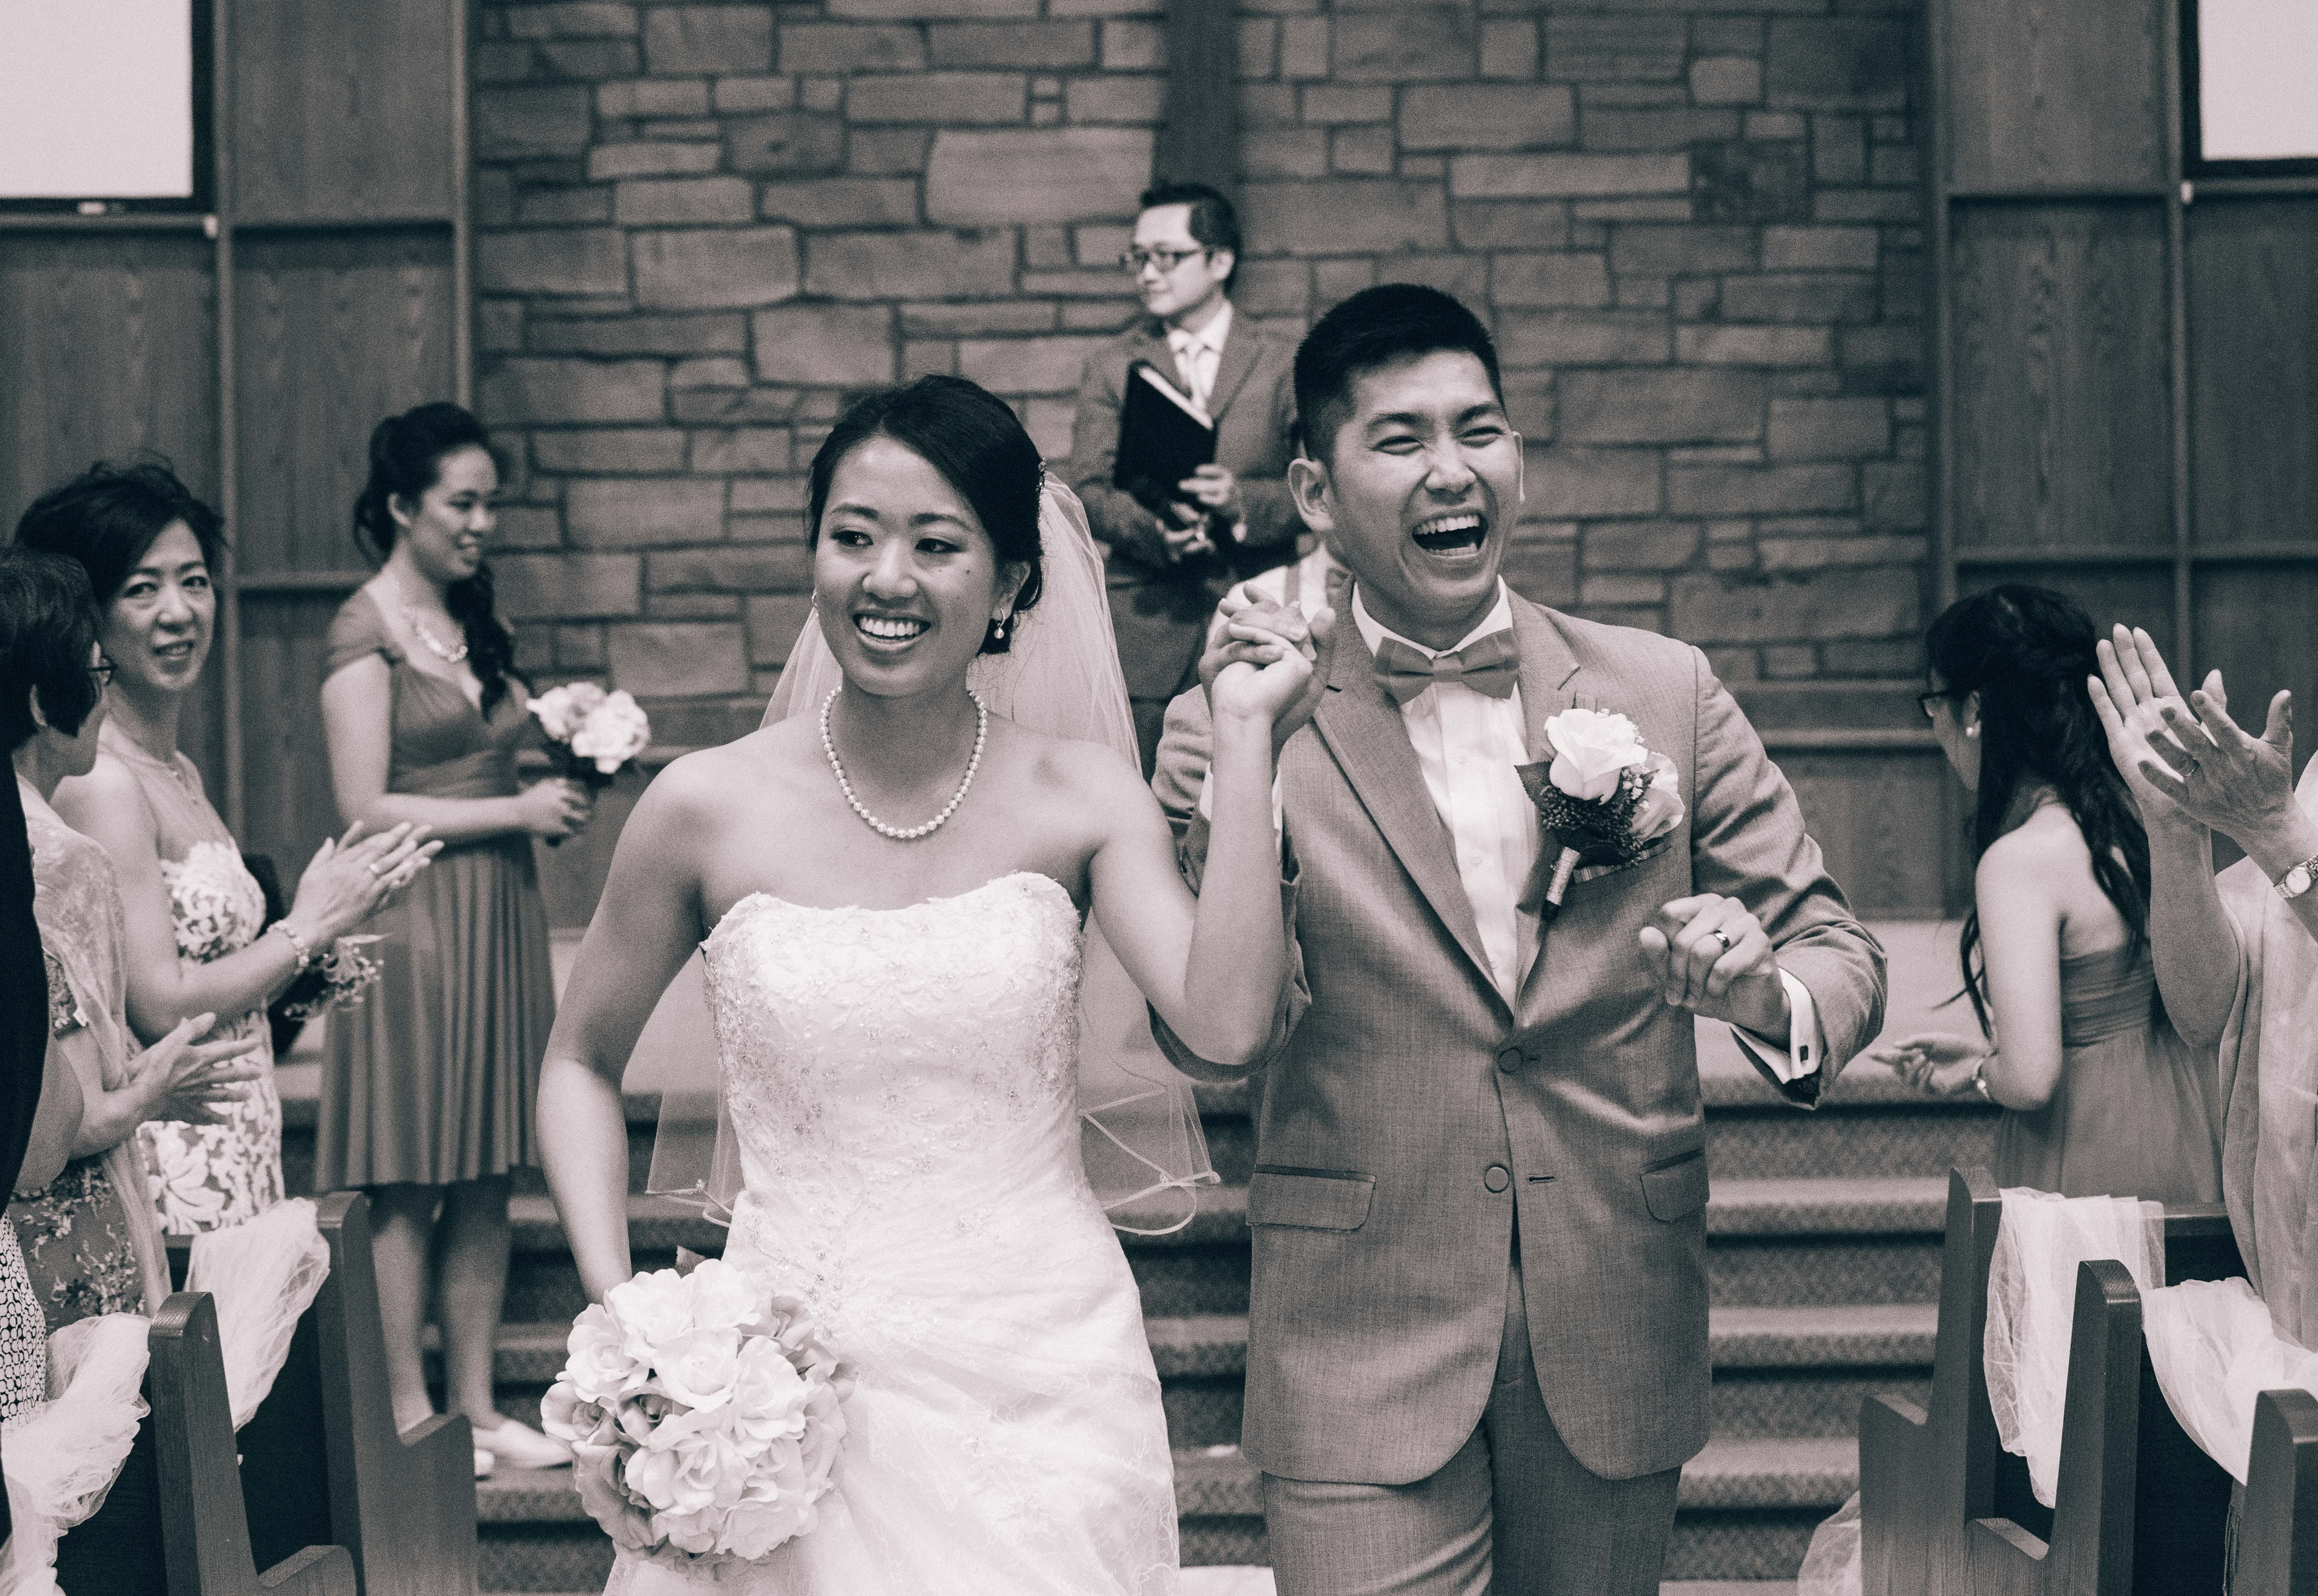 Chinese bride and groom jubilantly walking down the aisle after getting married